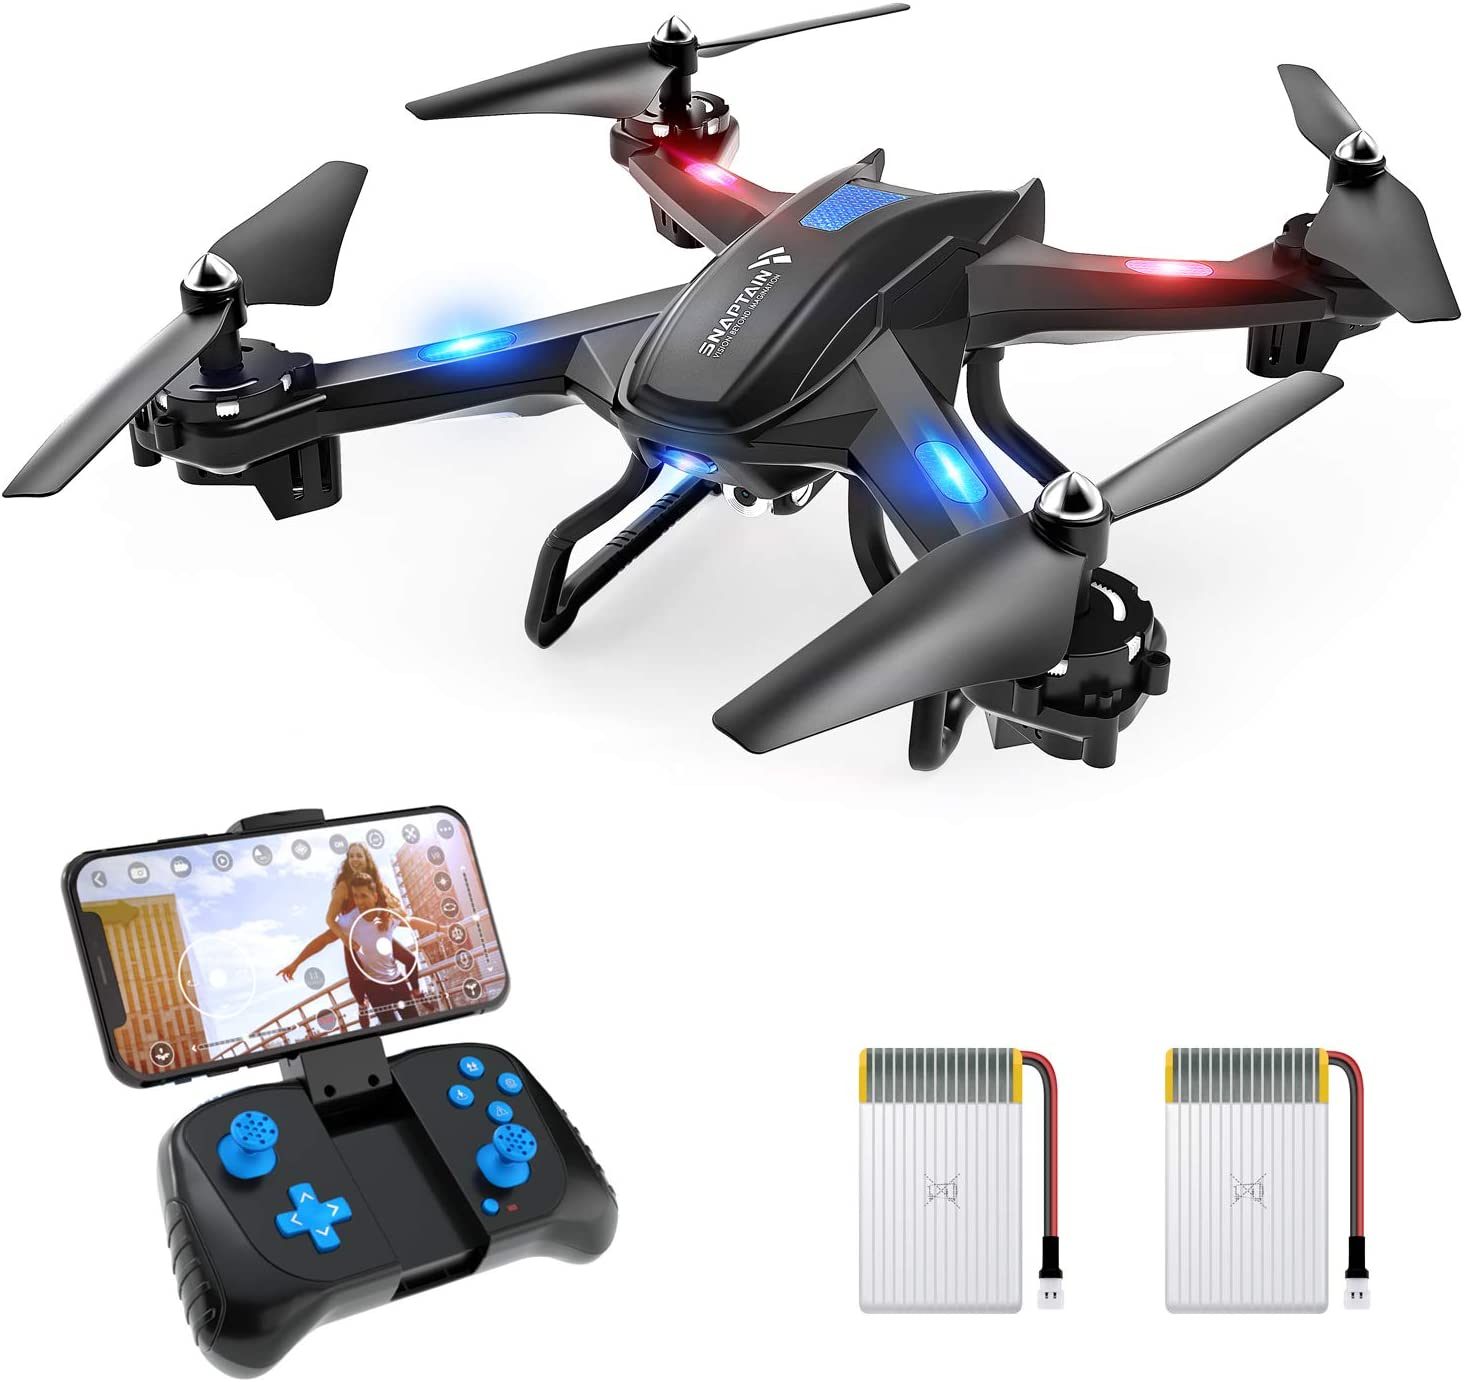 SNAPTAIN S5C WiFi FPV Drone with 720P HD Camera,Voice Control,